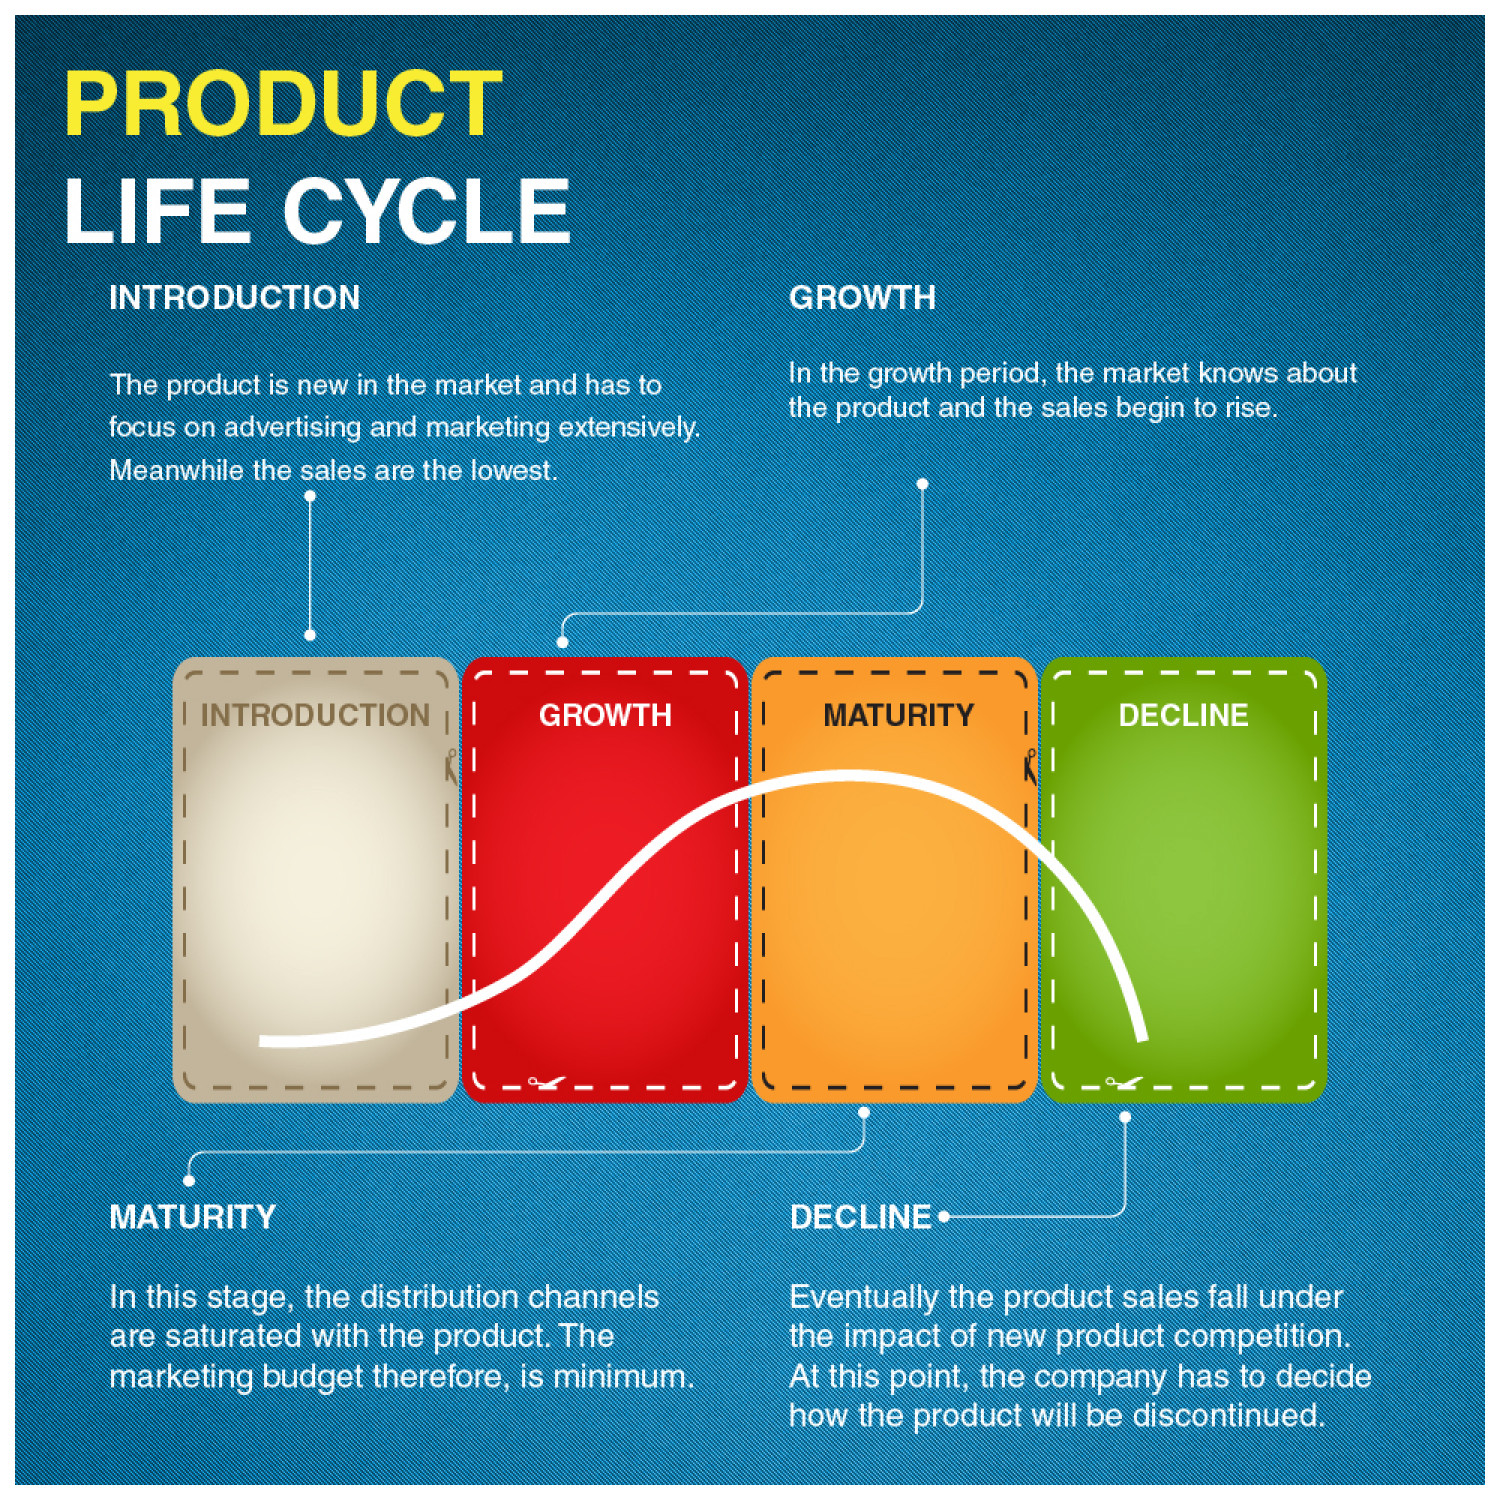 production life cycle begining - HD1500×1500